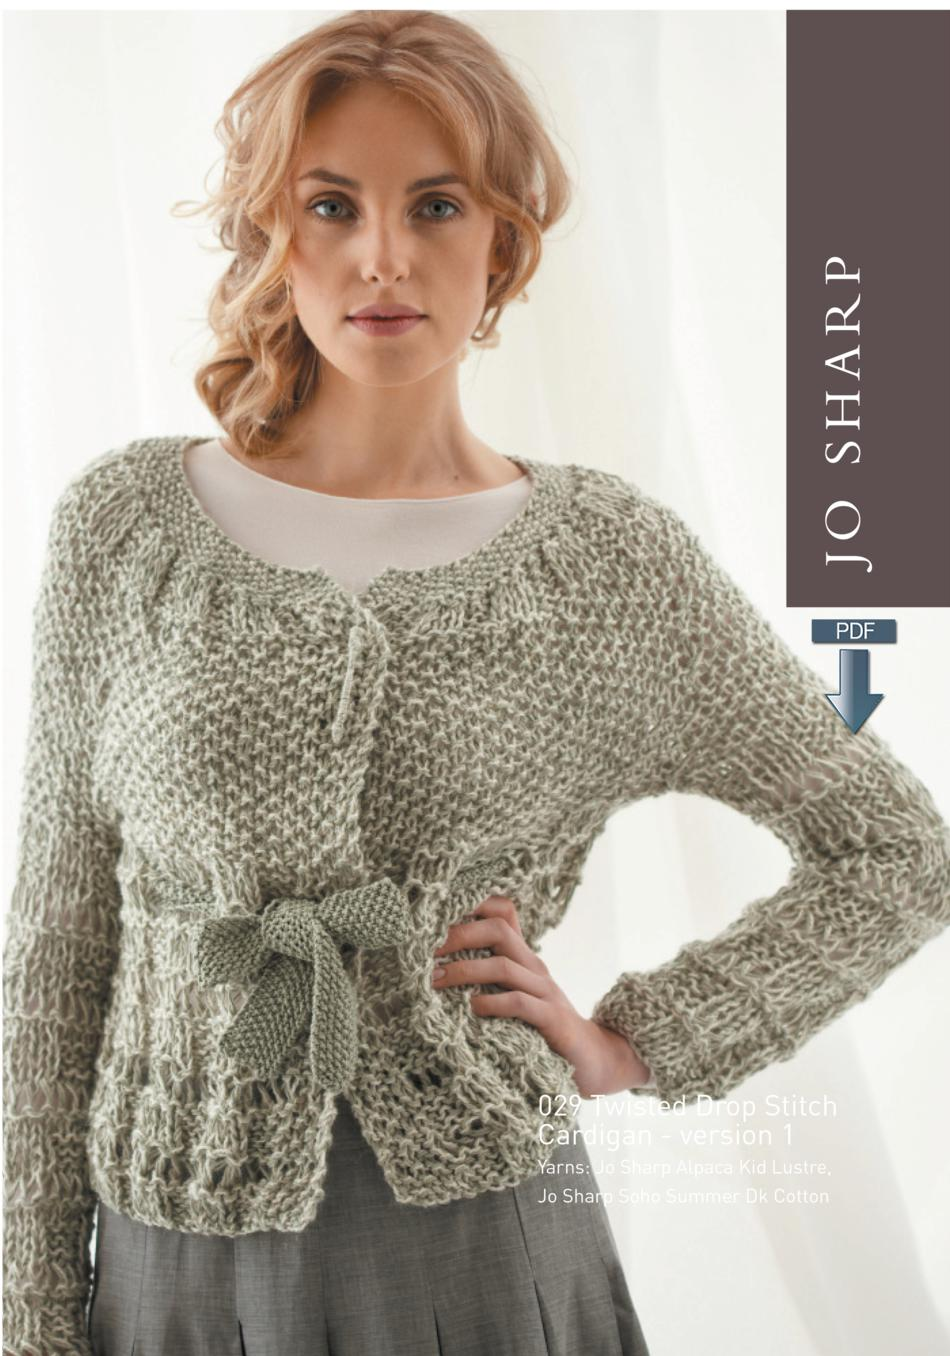 Jo Sharp Drop Stitch Vest and Cardigan - Pattern Download, Knitting ...